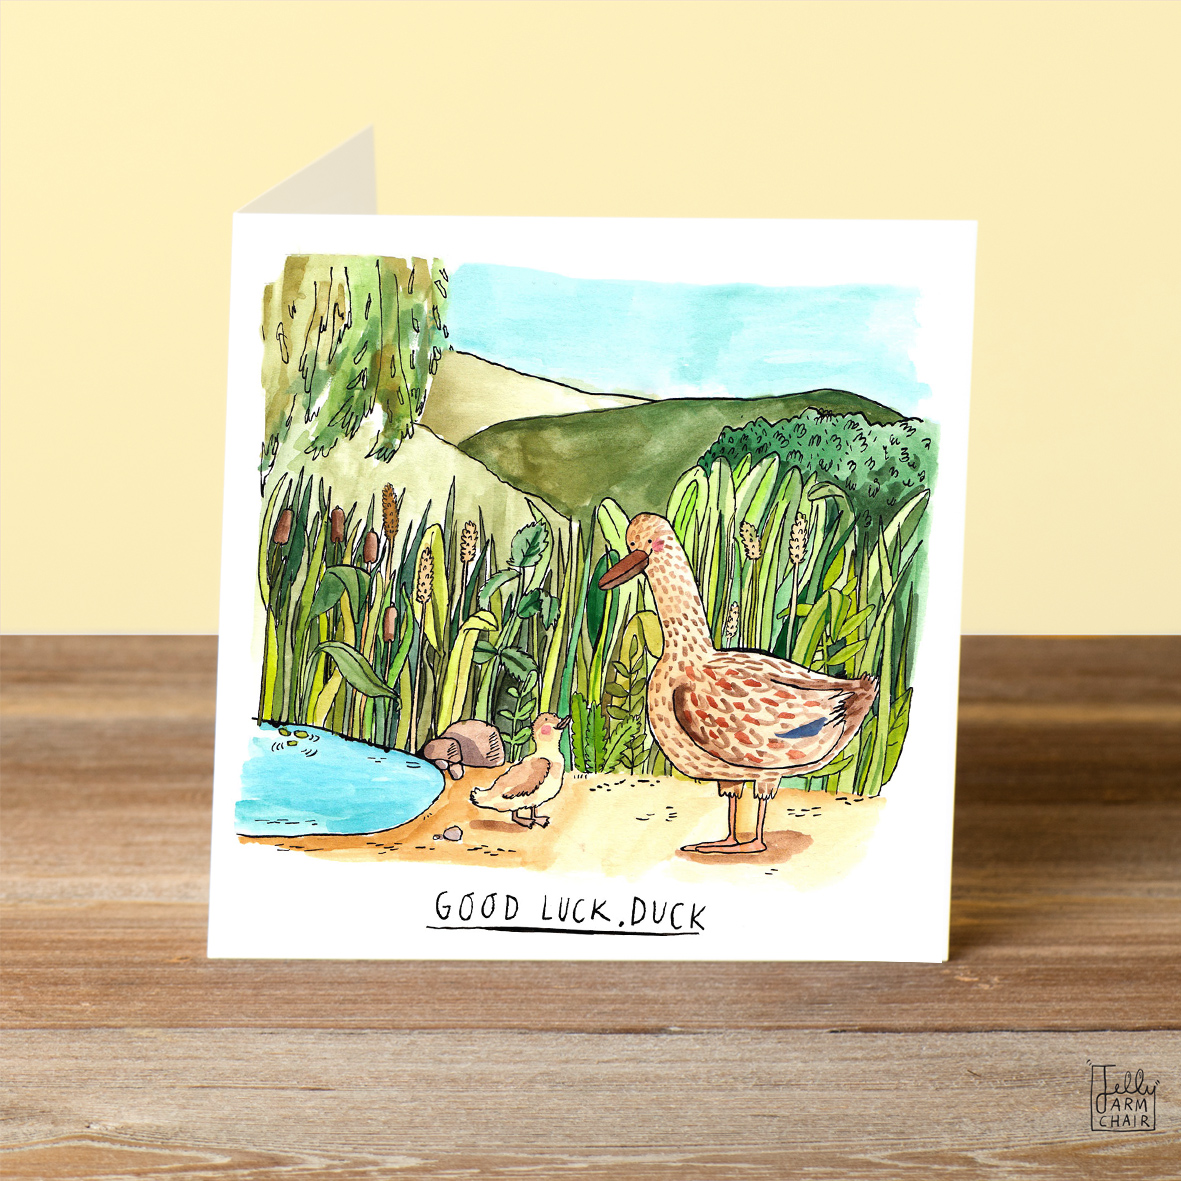 Good-Luck-Duck_-Good-Luck-greetings-card-with-British-humour-and-duck-pun_FW05_OT